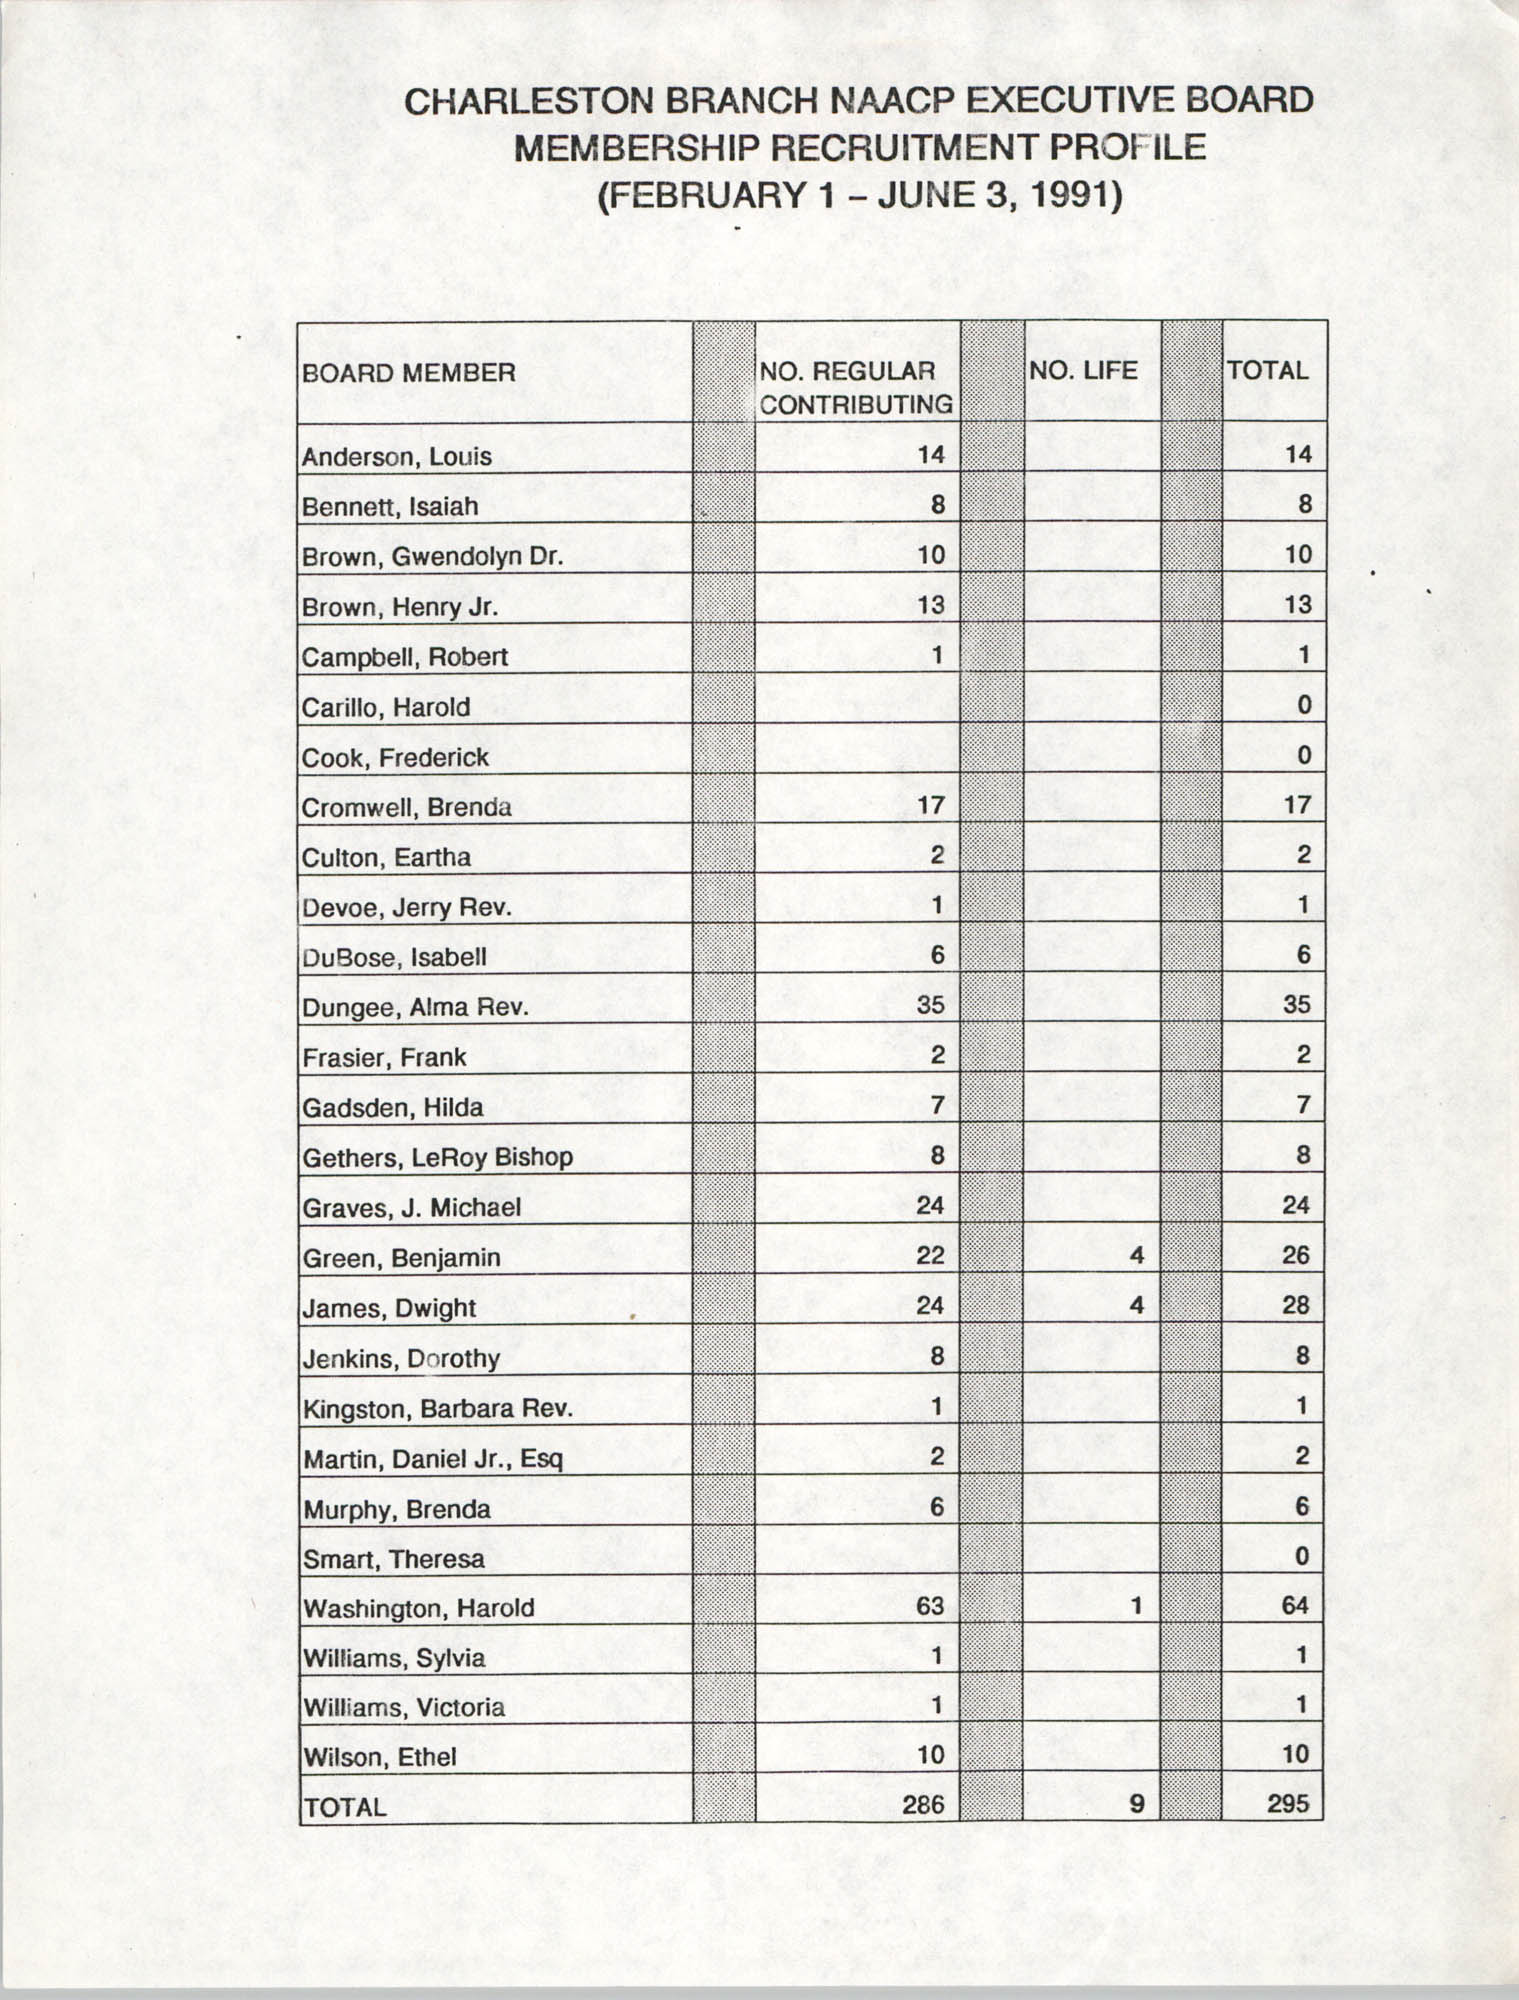 Membership Recruitment Profile, Executive Board, National Association for the Advancement of Colored People, February 1-June June 3, 1991